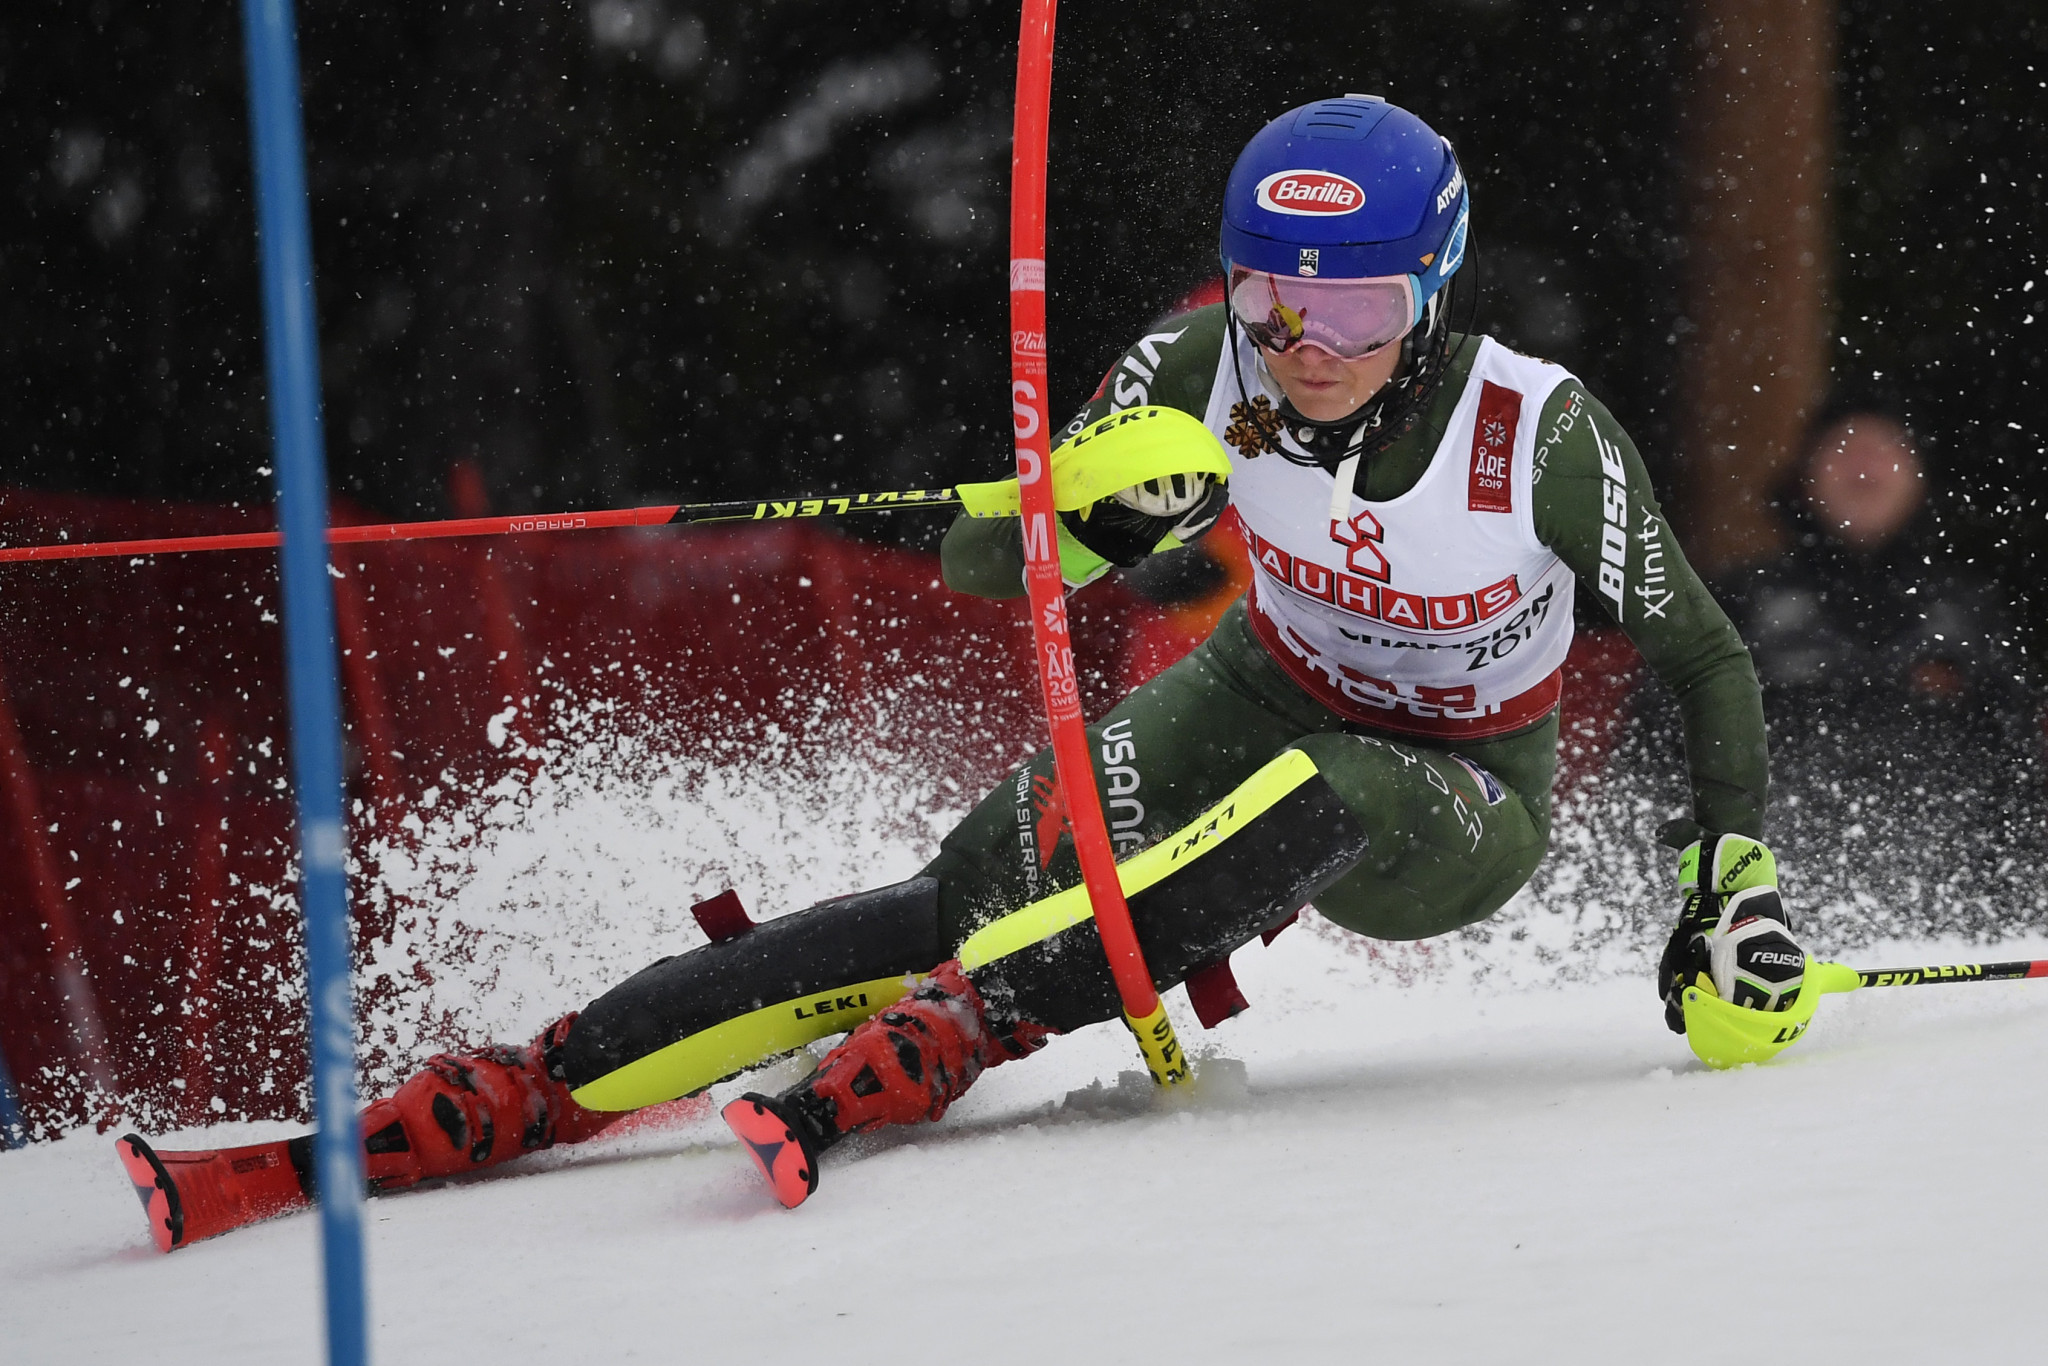 Shiffrin clinches women's slalom title for fourth successive FIS Alpine World Ski Championships